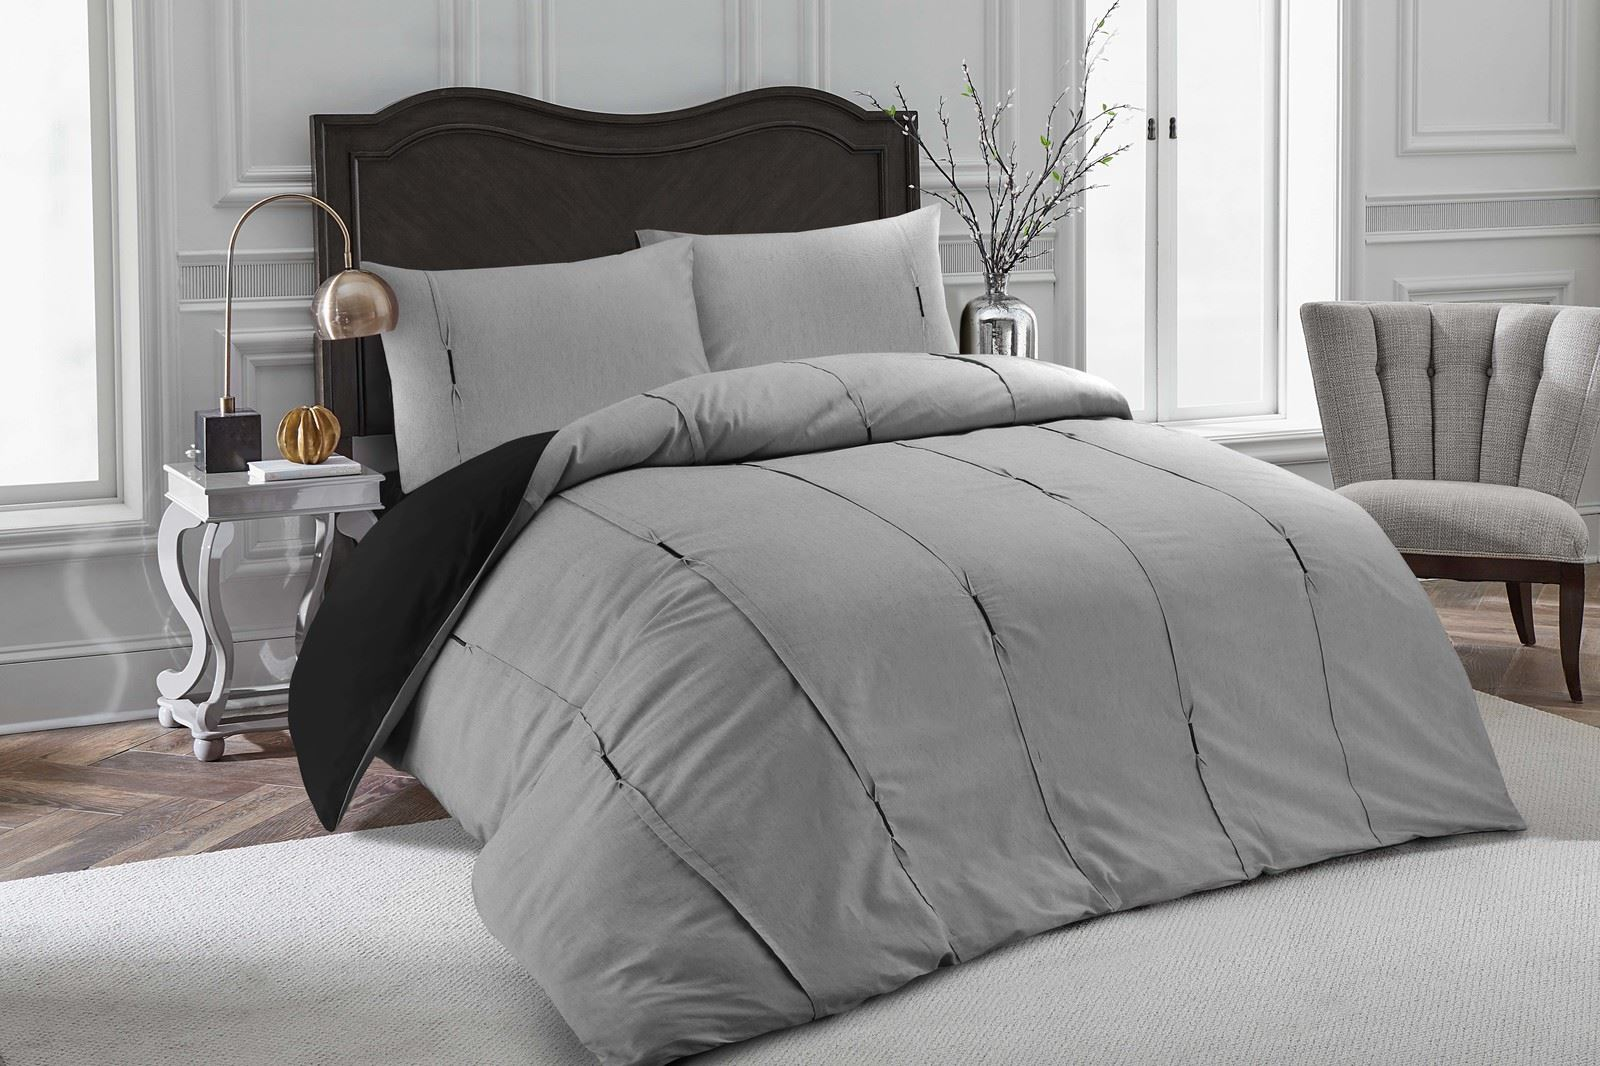 Luxury-Embellished-Duvet-Cover-Set-Single-Double-Super-King-Size-Bedding-Grey thumbnail 6